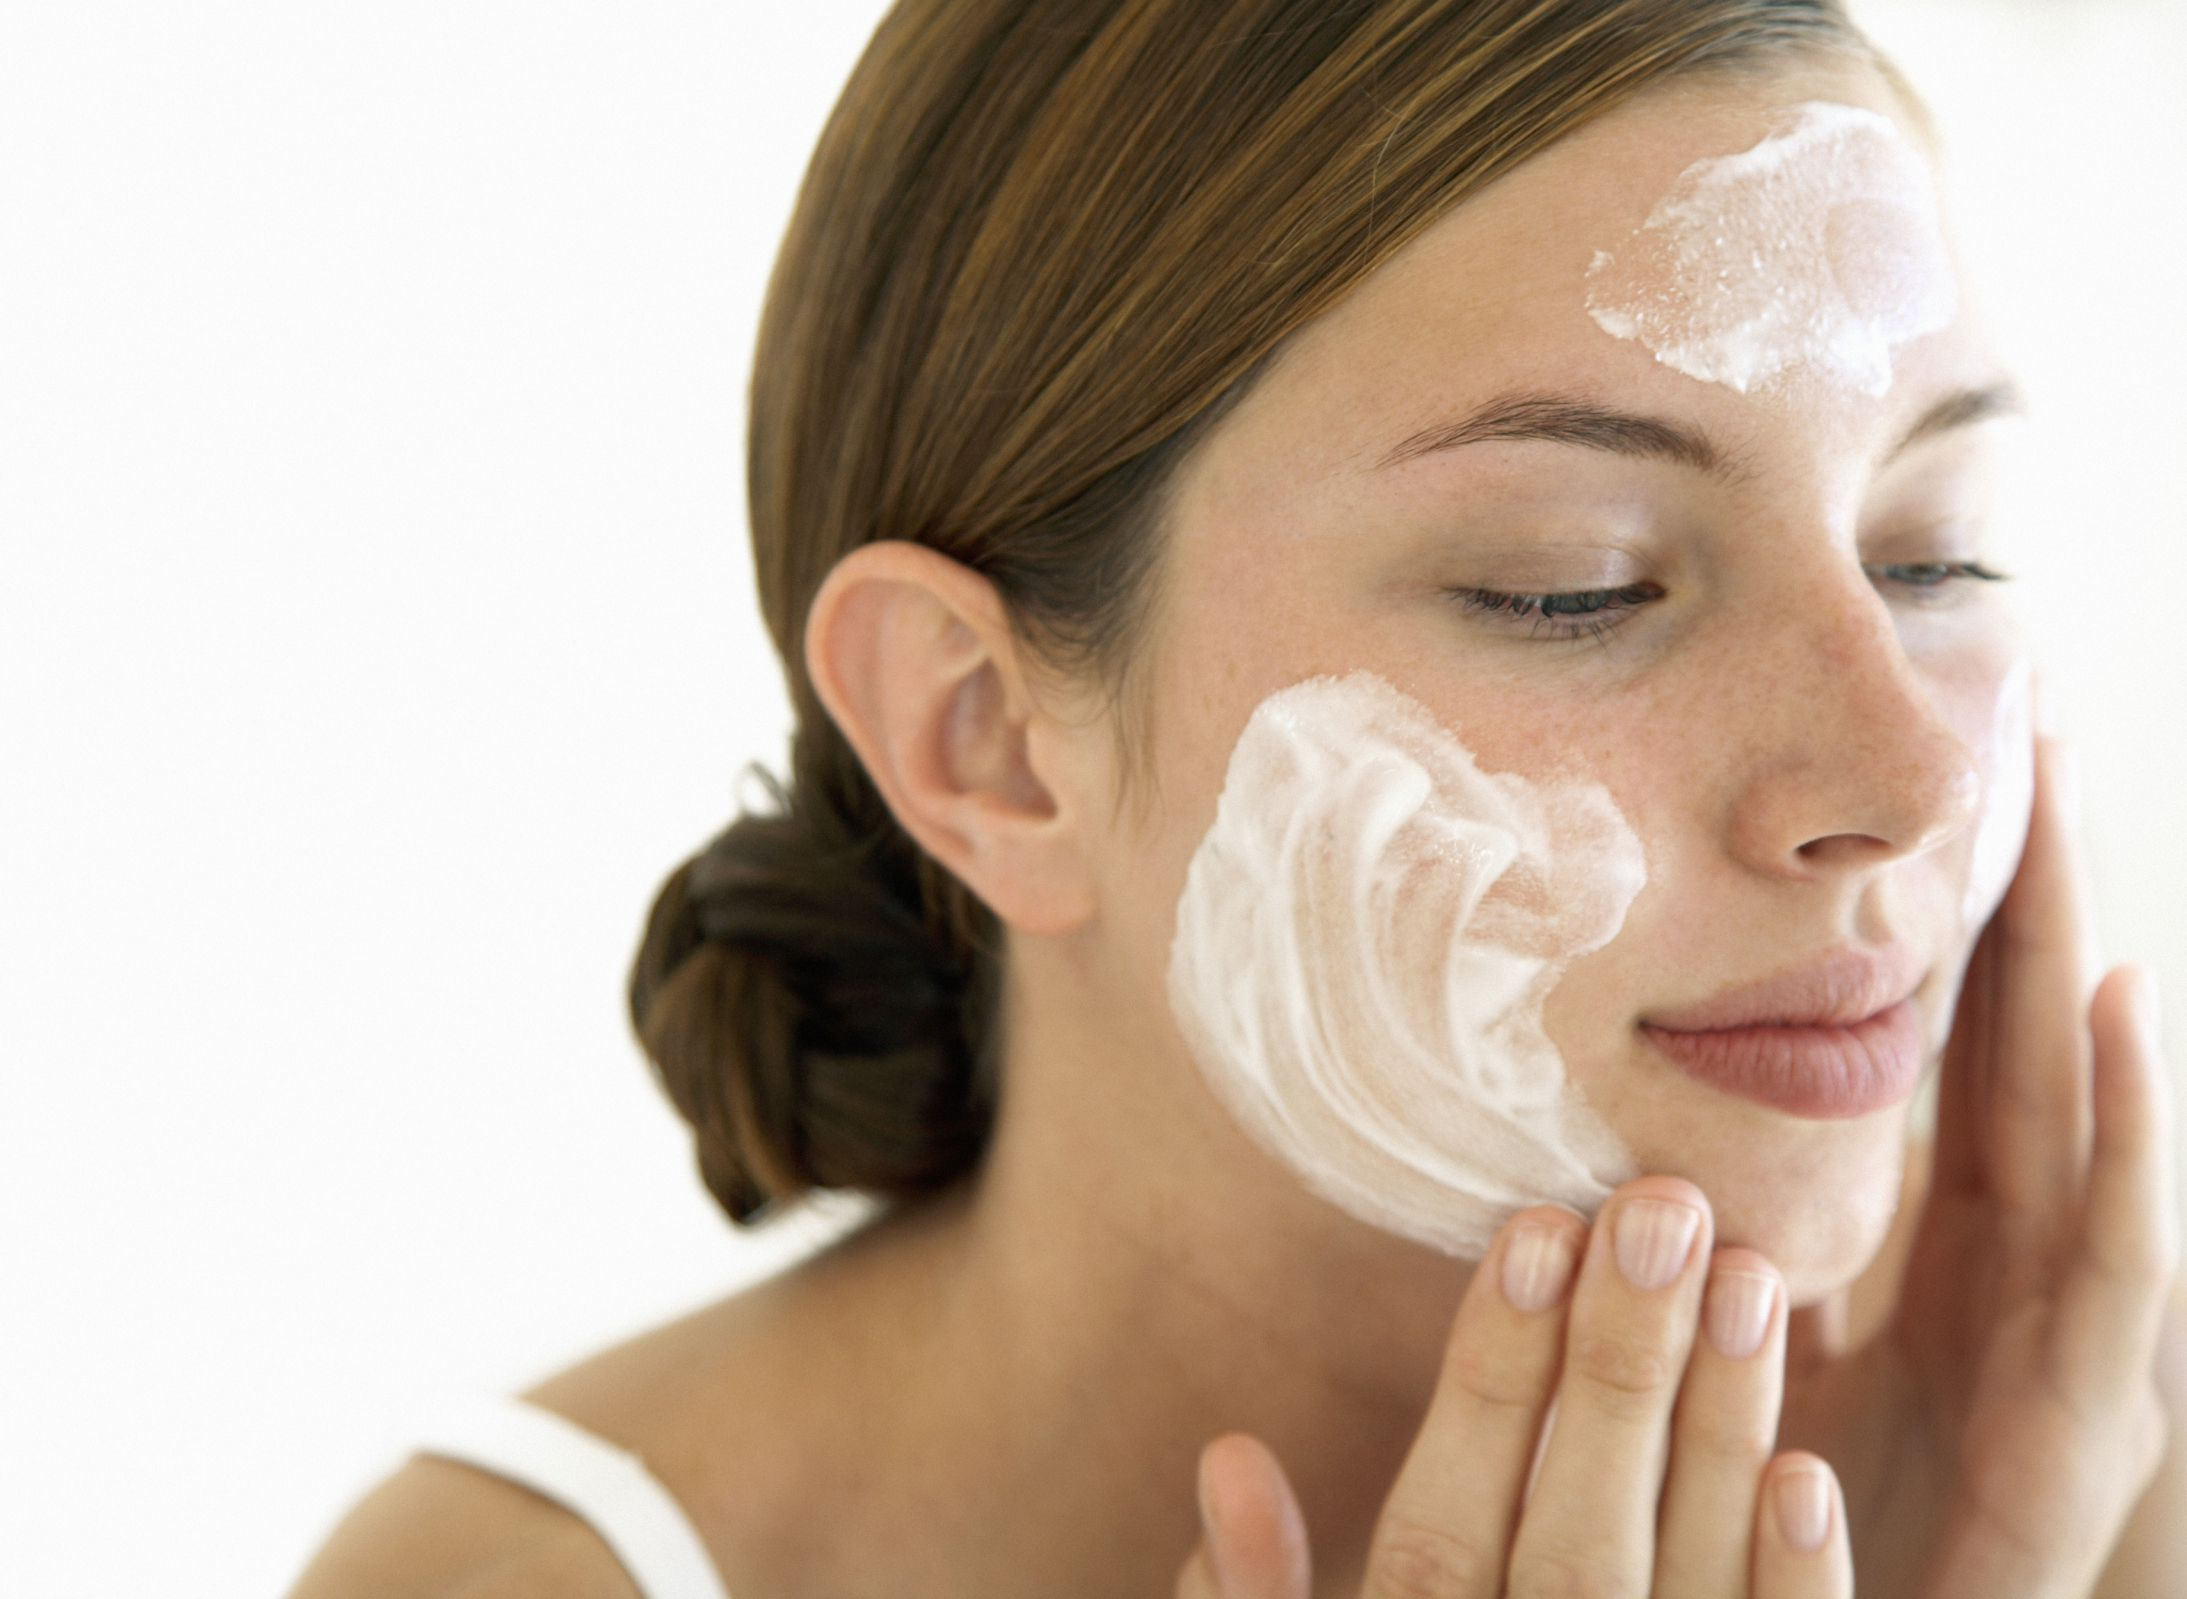 Save Time & Money With a Broad Spectrum SPF Moisturizer